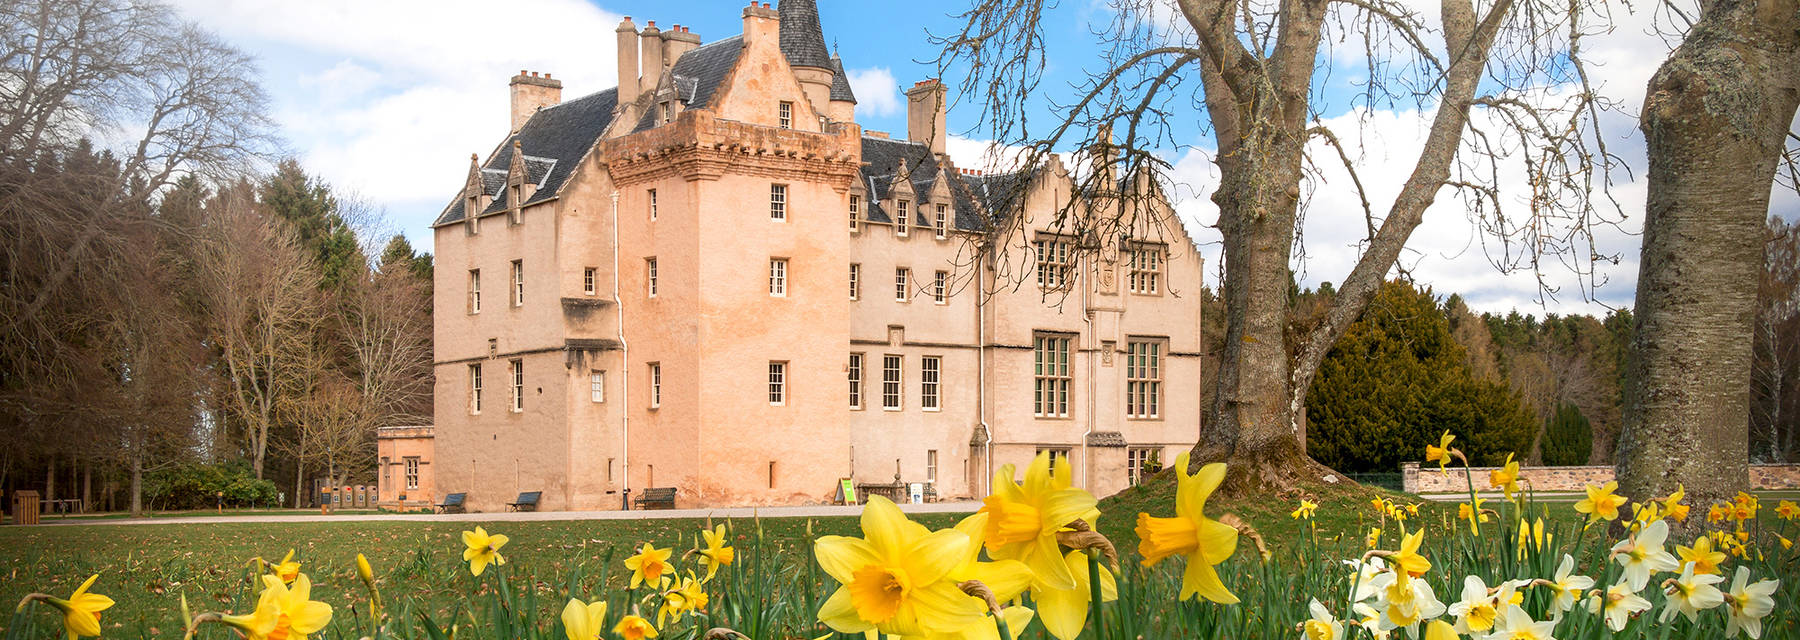 Brodie Castle and grounds, with daffodils in foreground